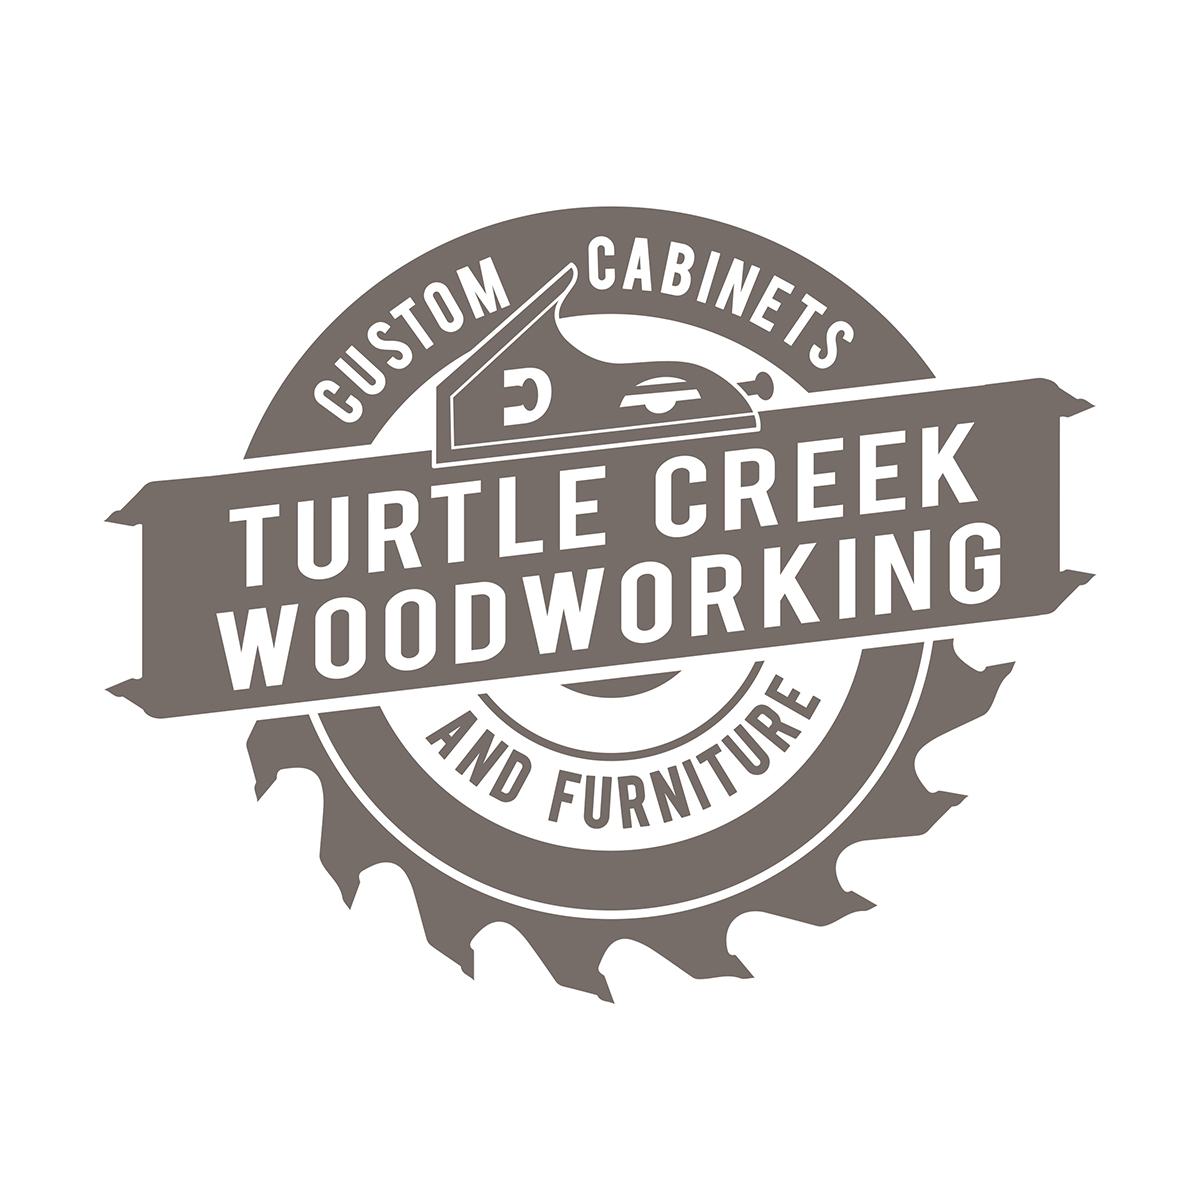 Turtle Creek Woodworking